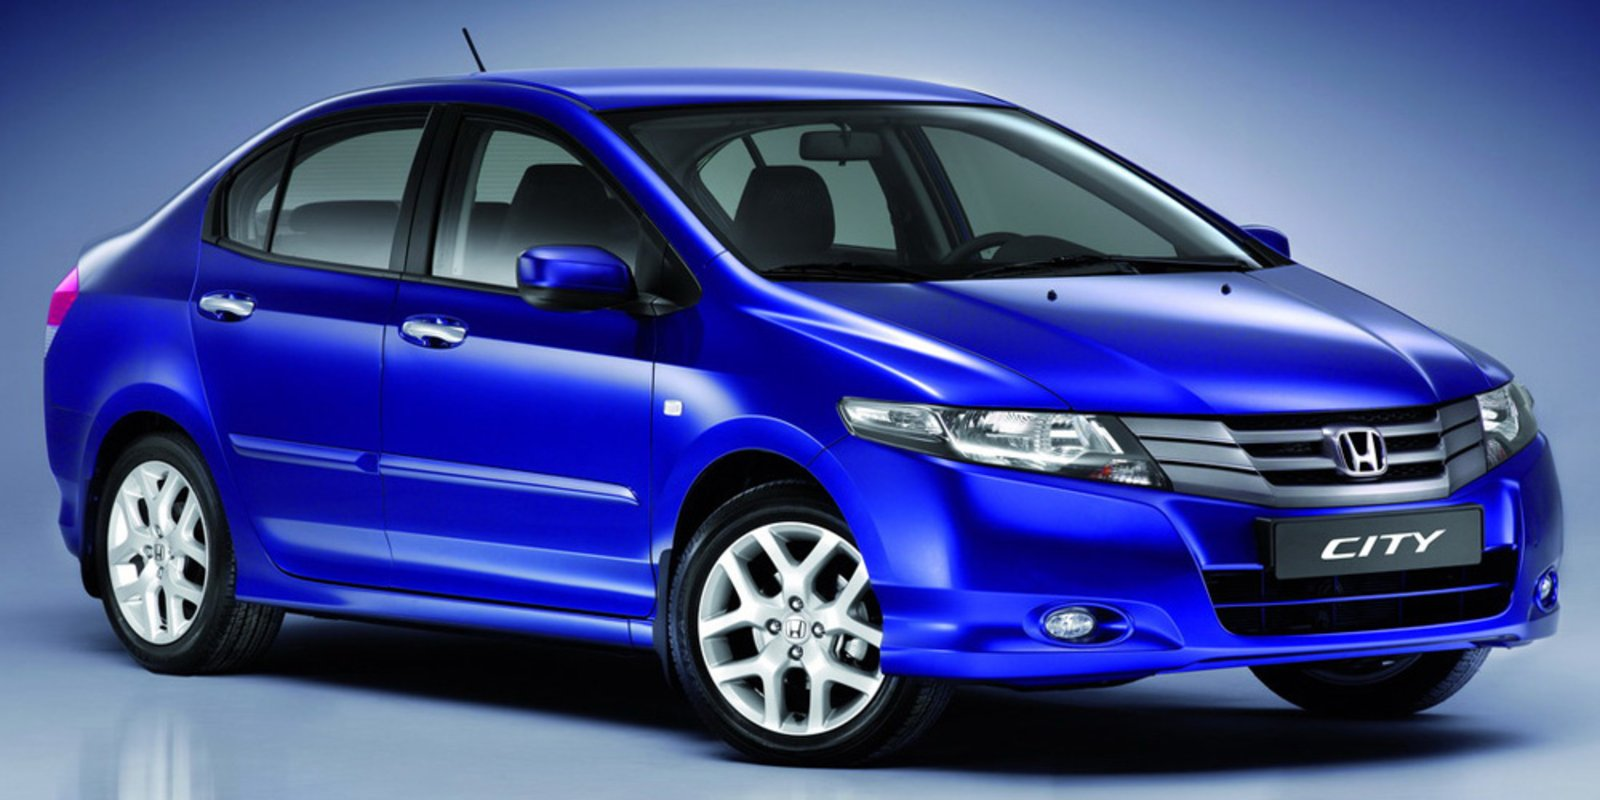 HONDA+CITY+ZX+EX+AUTOMOTIVE+CARS+%25282%2529.jpg